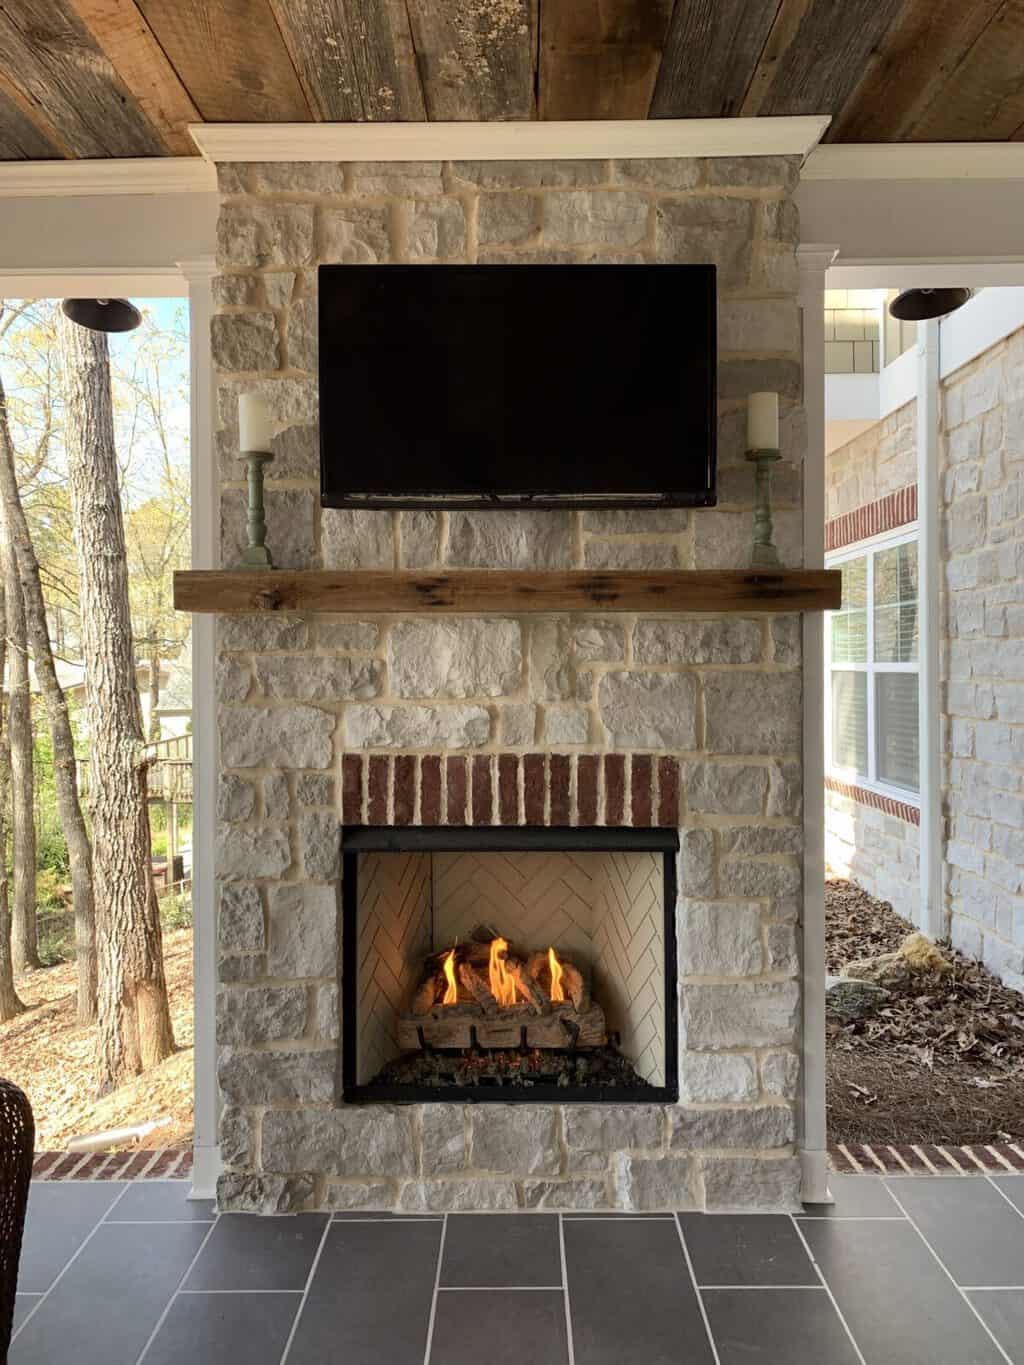 How we Built Our Outdoor Fireplace on our Patio Porch